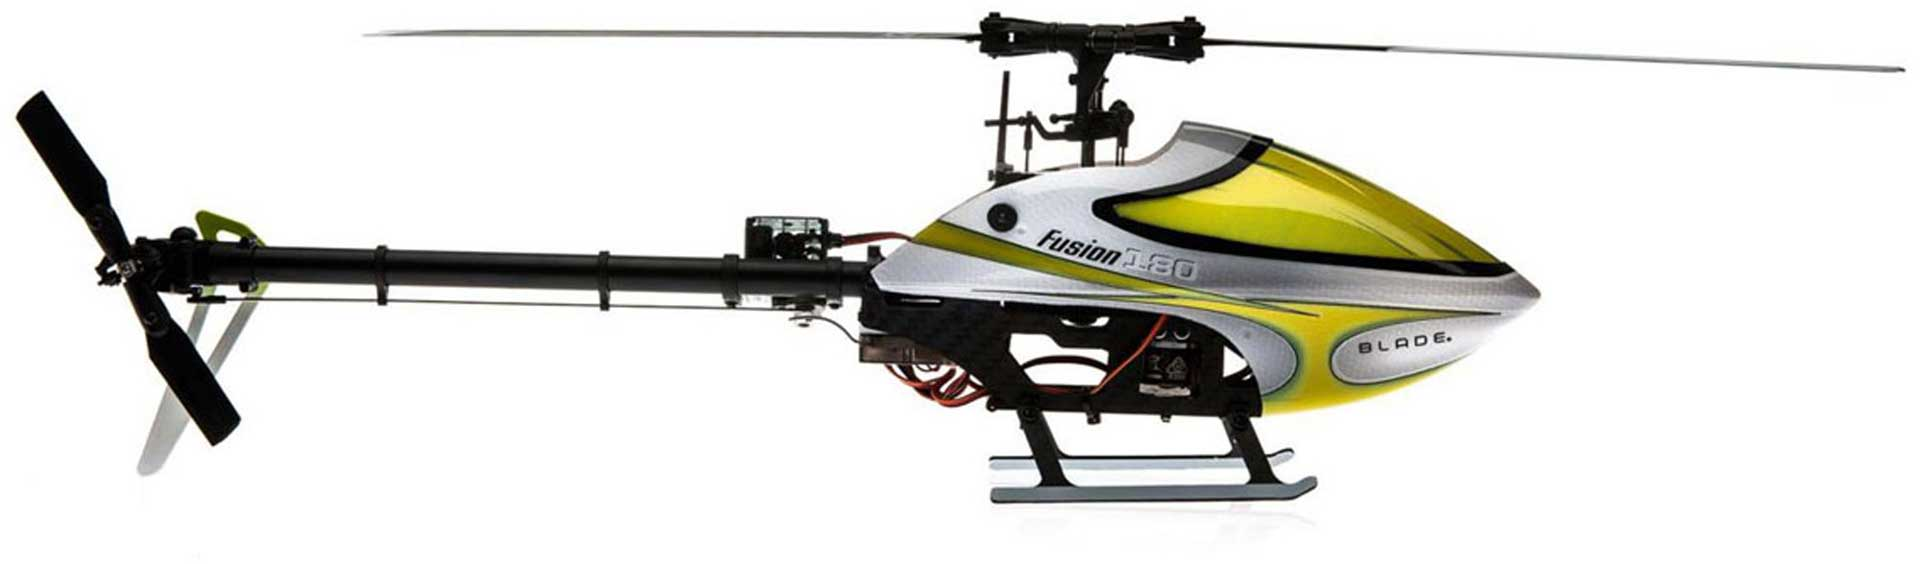 BLADE FUSION 180 BNF BASIC HELICOPTER Hubschrauber / Helikopter